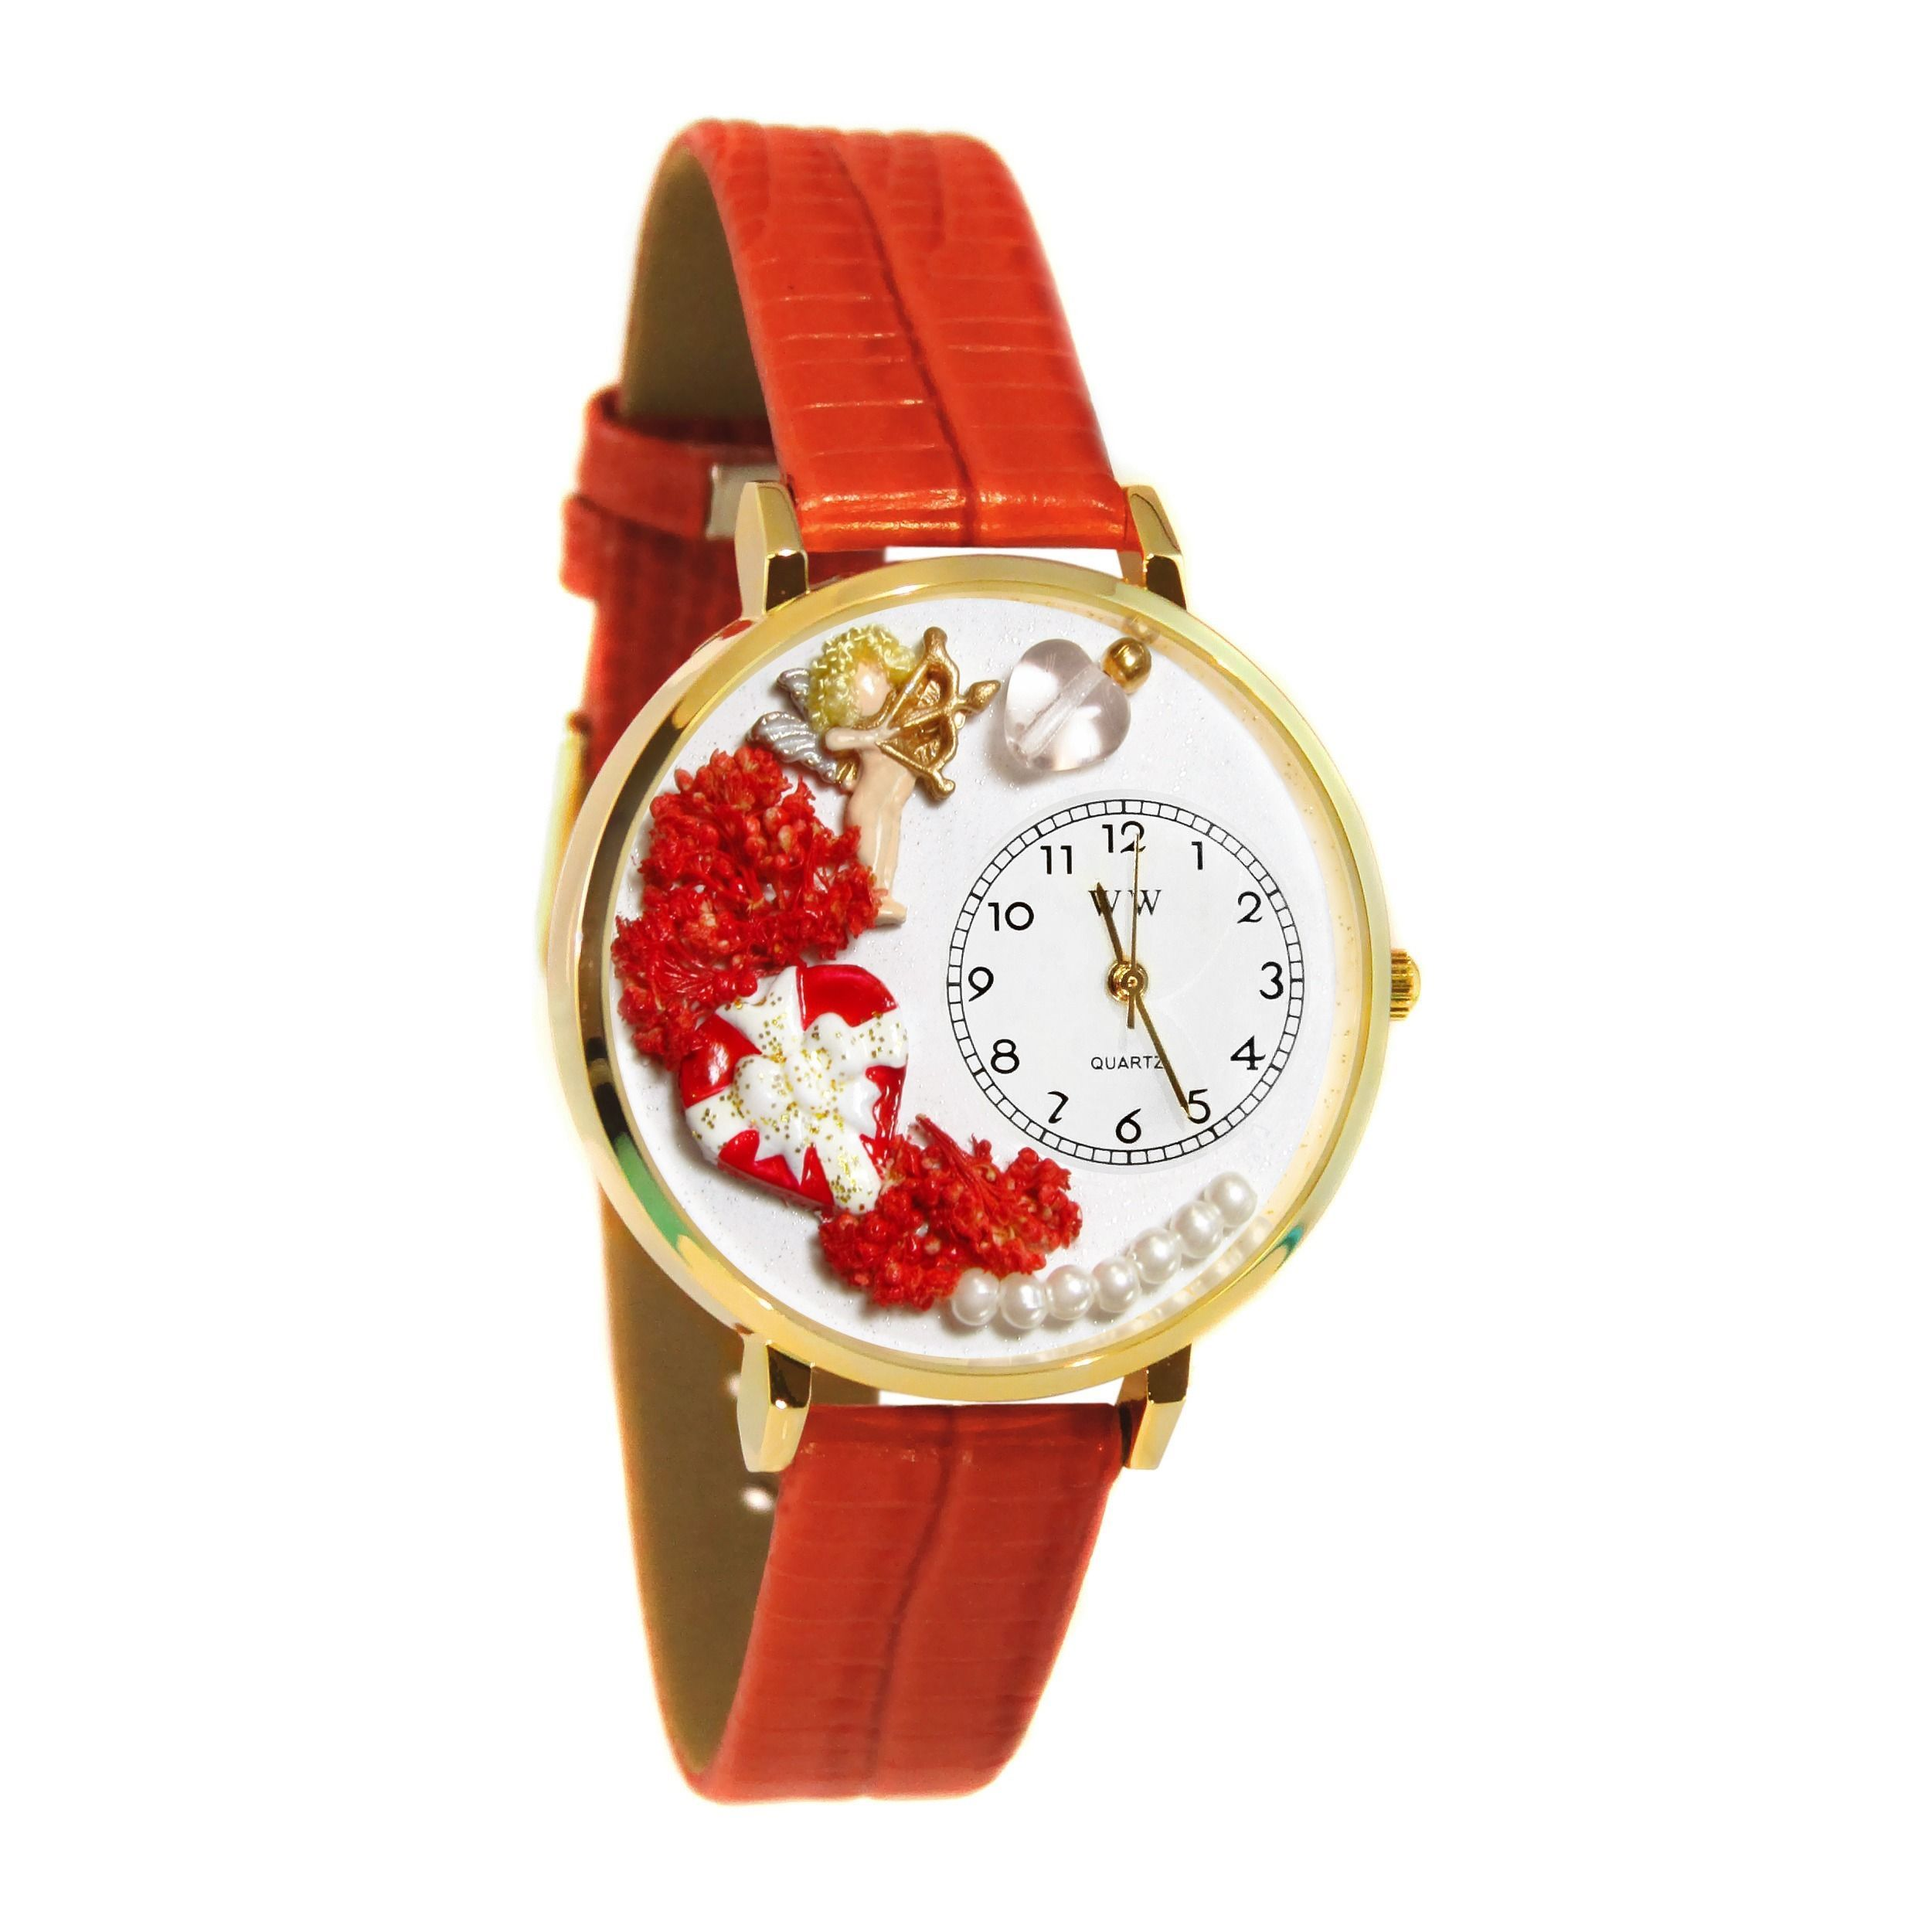 diamond watches ruby graff butterfly watch on strap leather red butterflyr classic